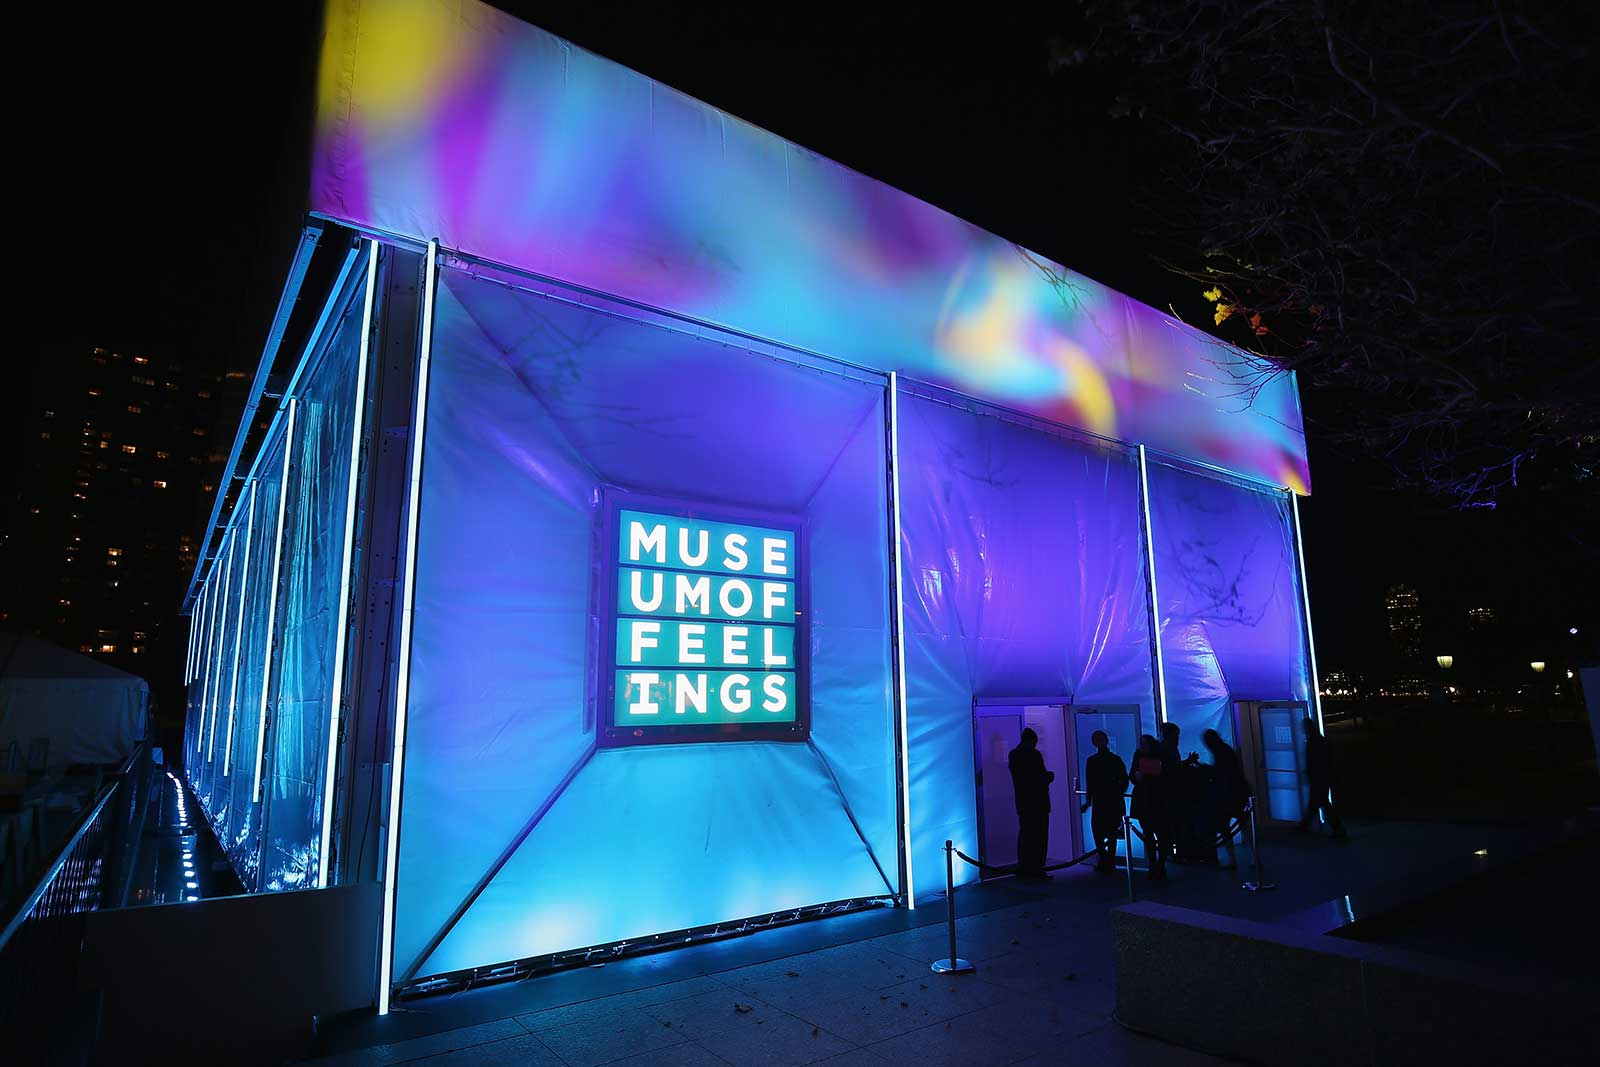 SC Johnson's Glade Museum of Feelings live brand experience that won a Cannes Lion award